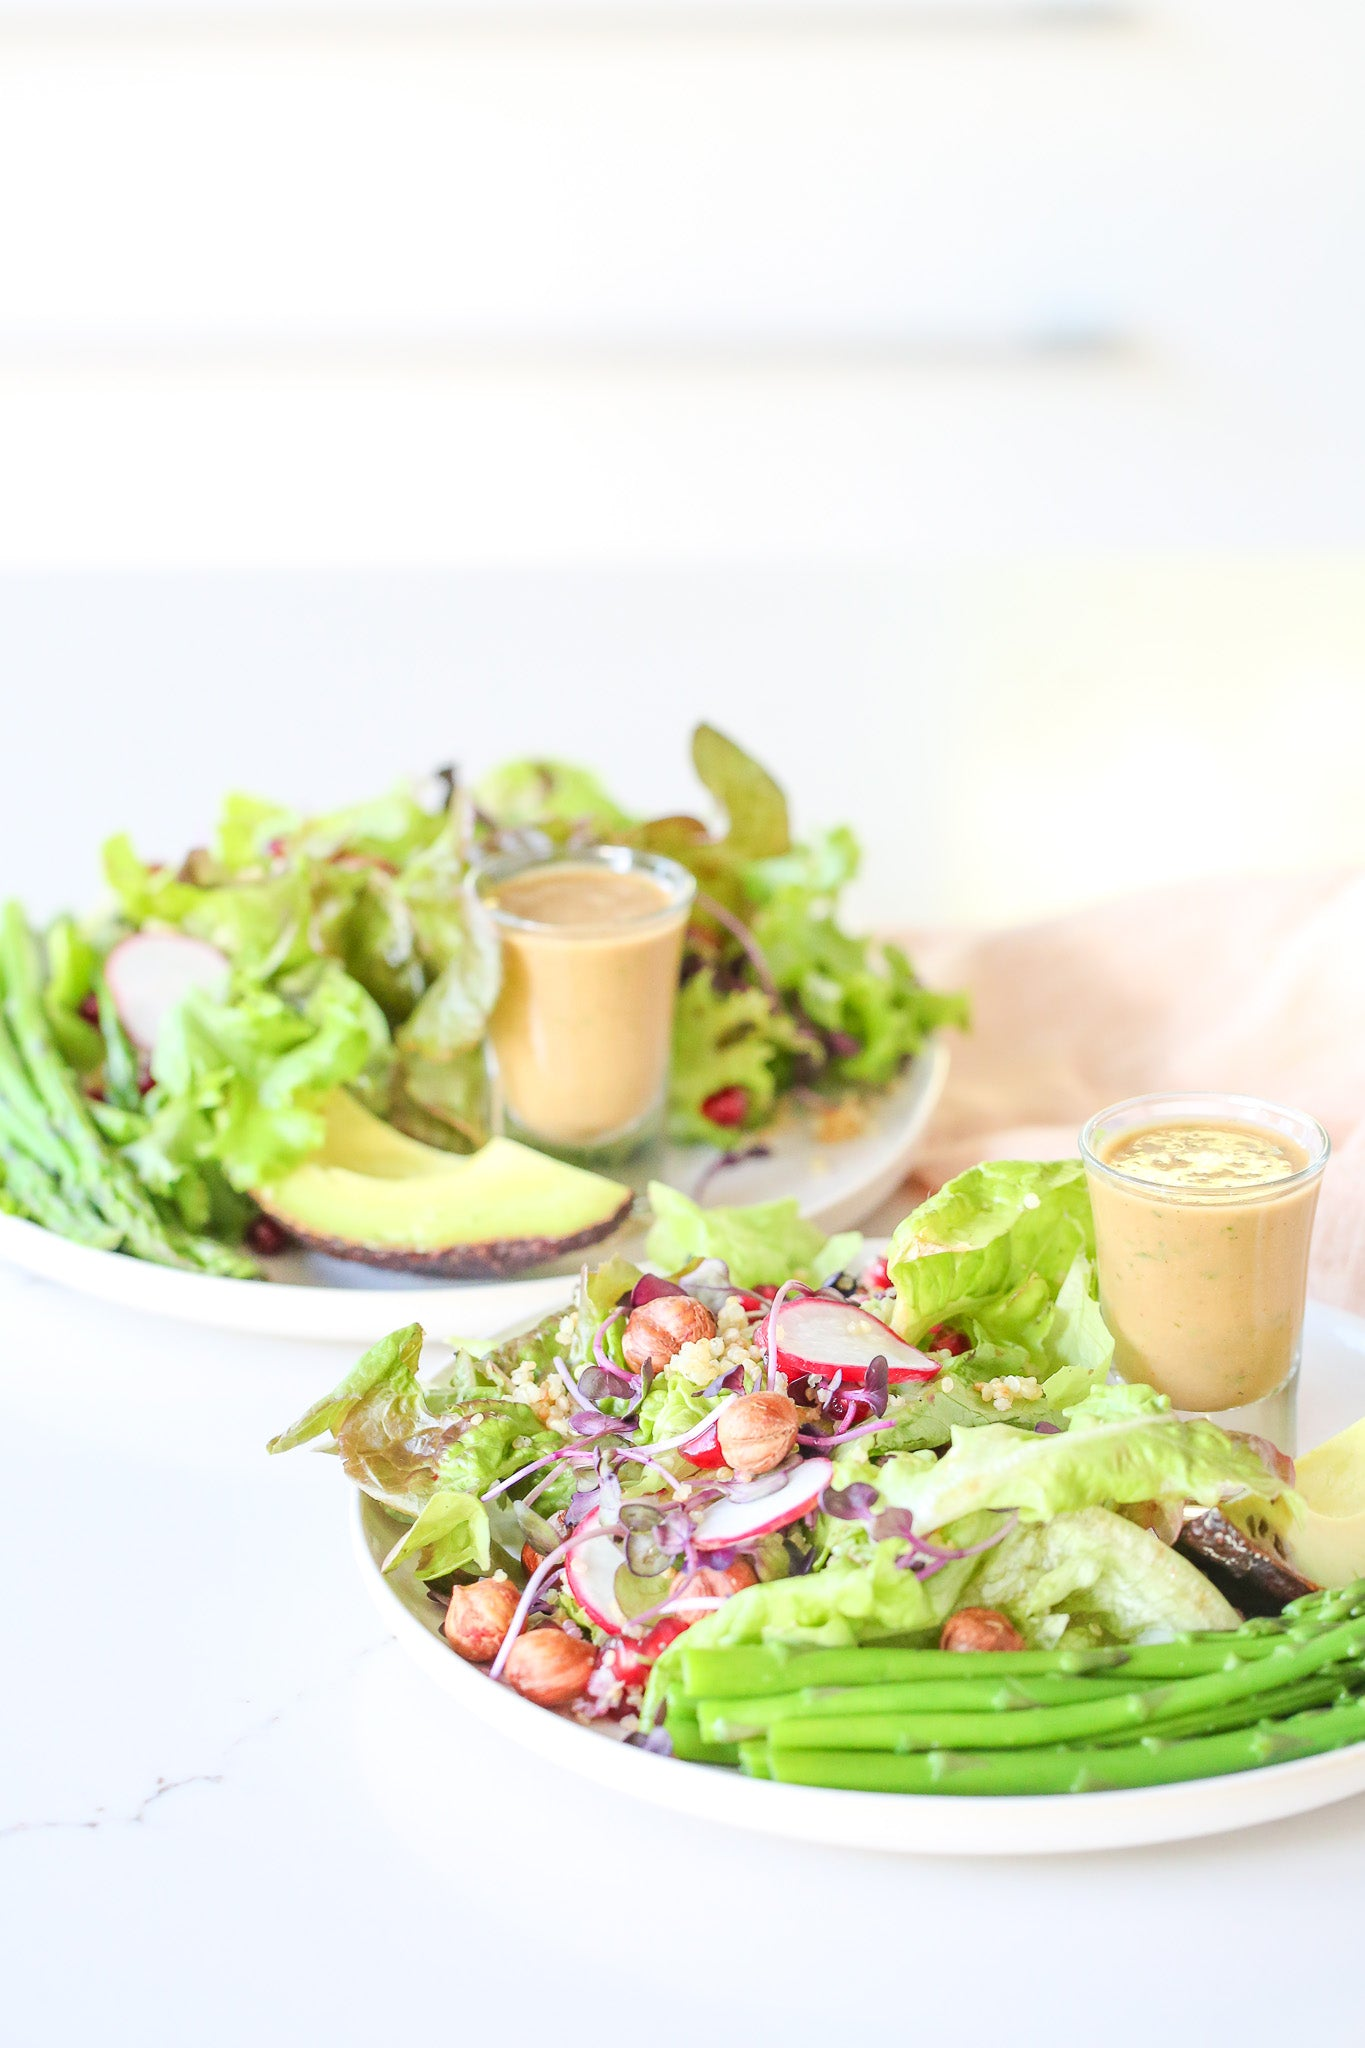 This salad is everything you love about summer – sweet pomegranate, fresh asparagus, creamy avo, crunchy hazelnuts, fluffy quinoa, all doused in the world's best balsamic vinaigrette. Vegan, gluten + dairy free.